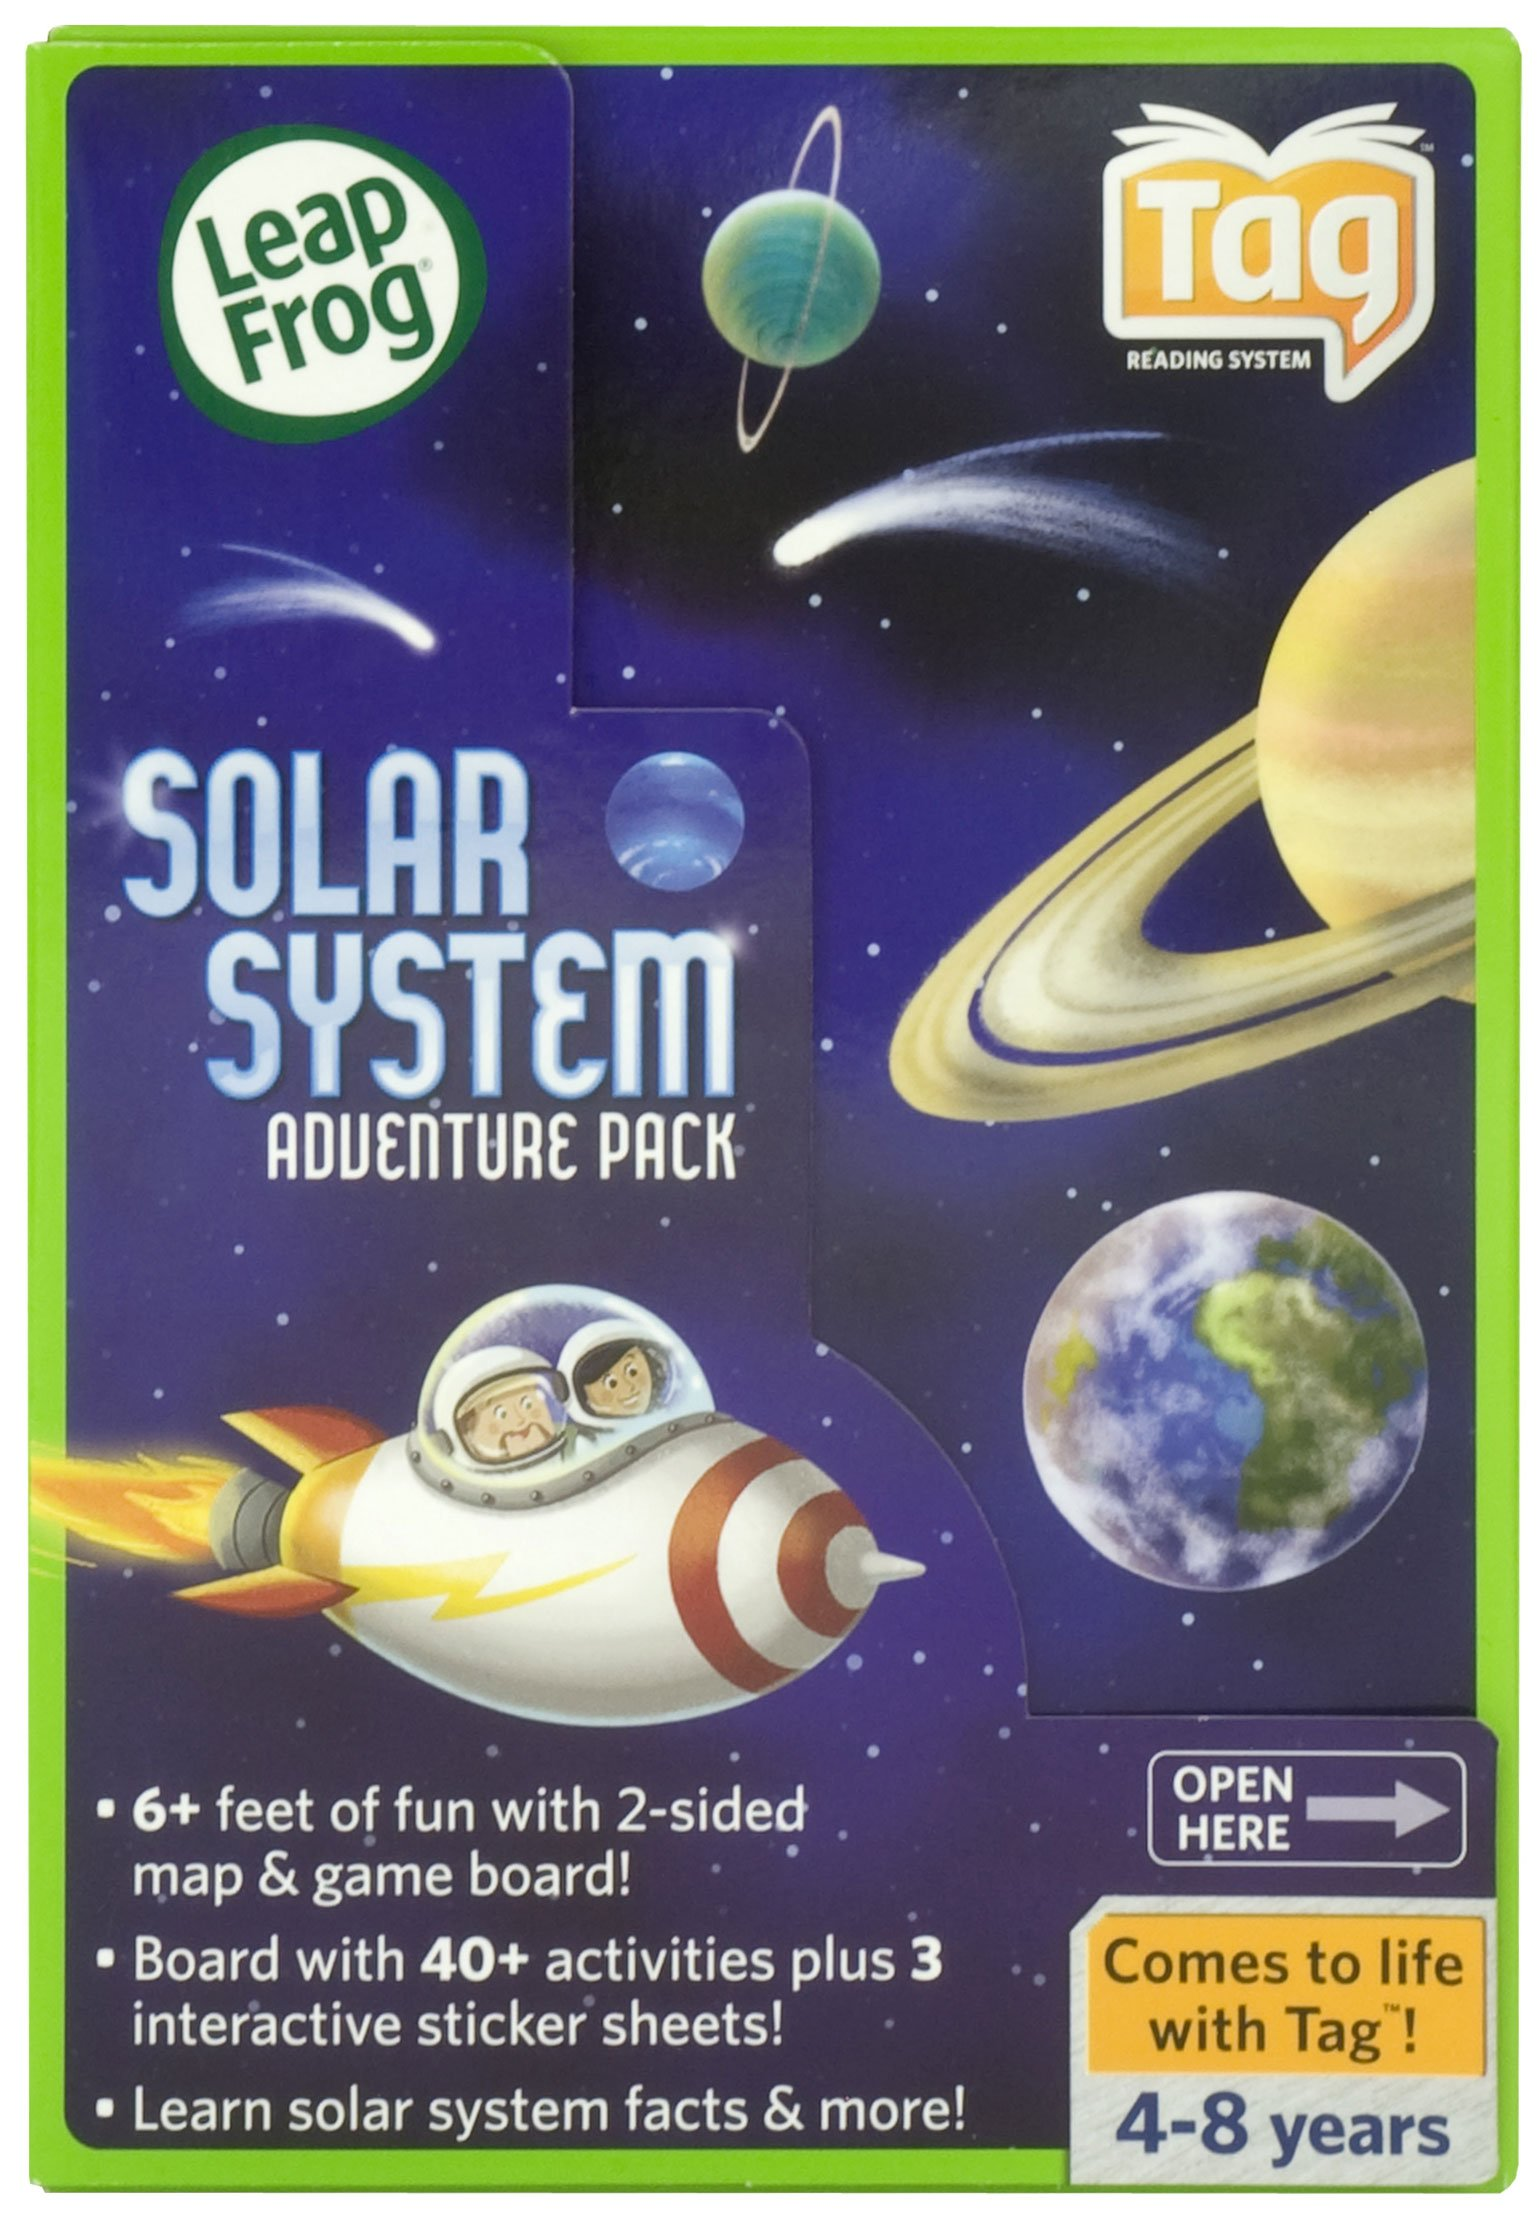 LeapFrog Tag Solar System Adventure Pack